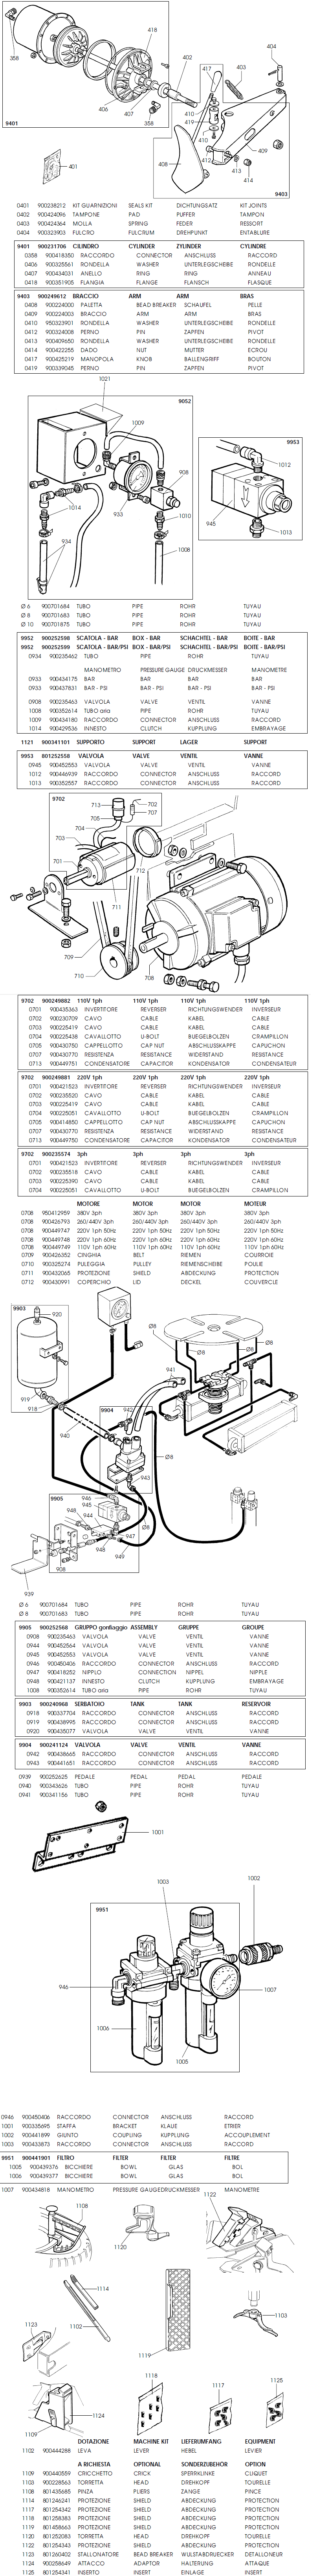 Equipment City Drill Parts Diagram Wiring List For Model Corghi Jolly